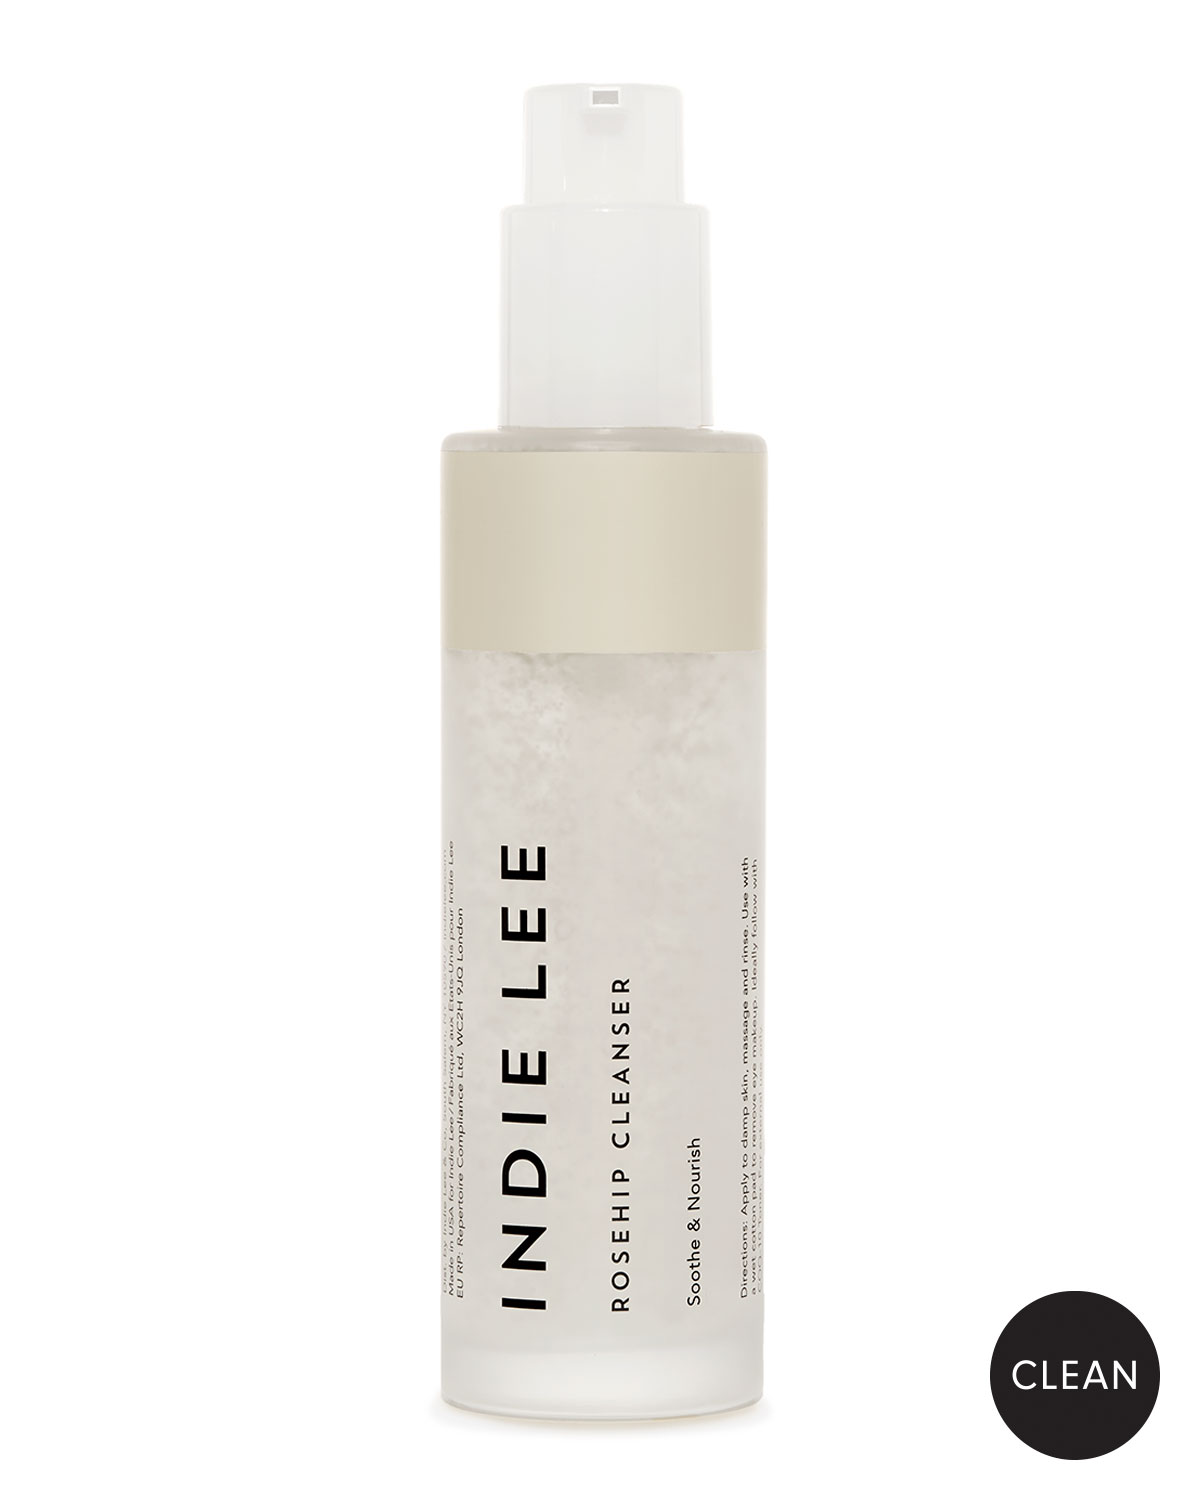 INDIE LEE Rosehip Cleanser, 4.2 Oz./ 125 Ml